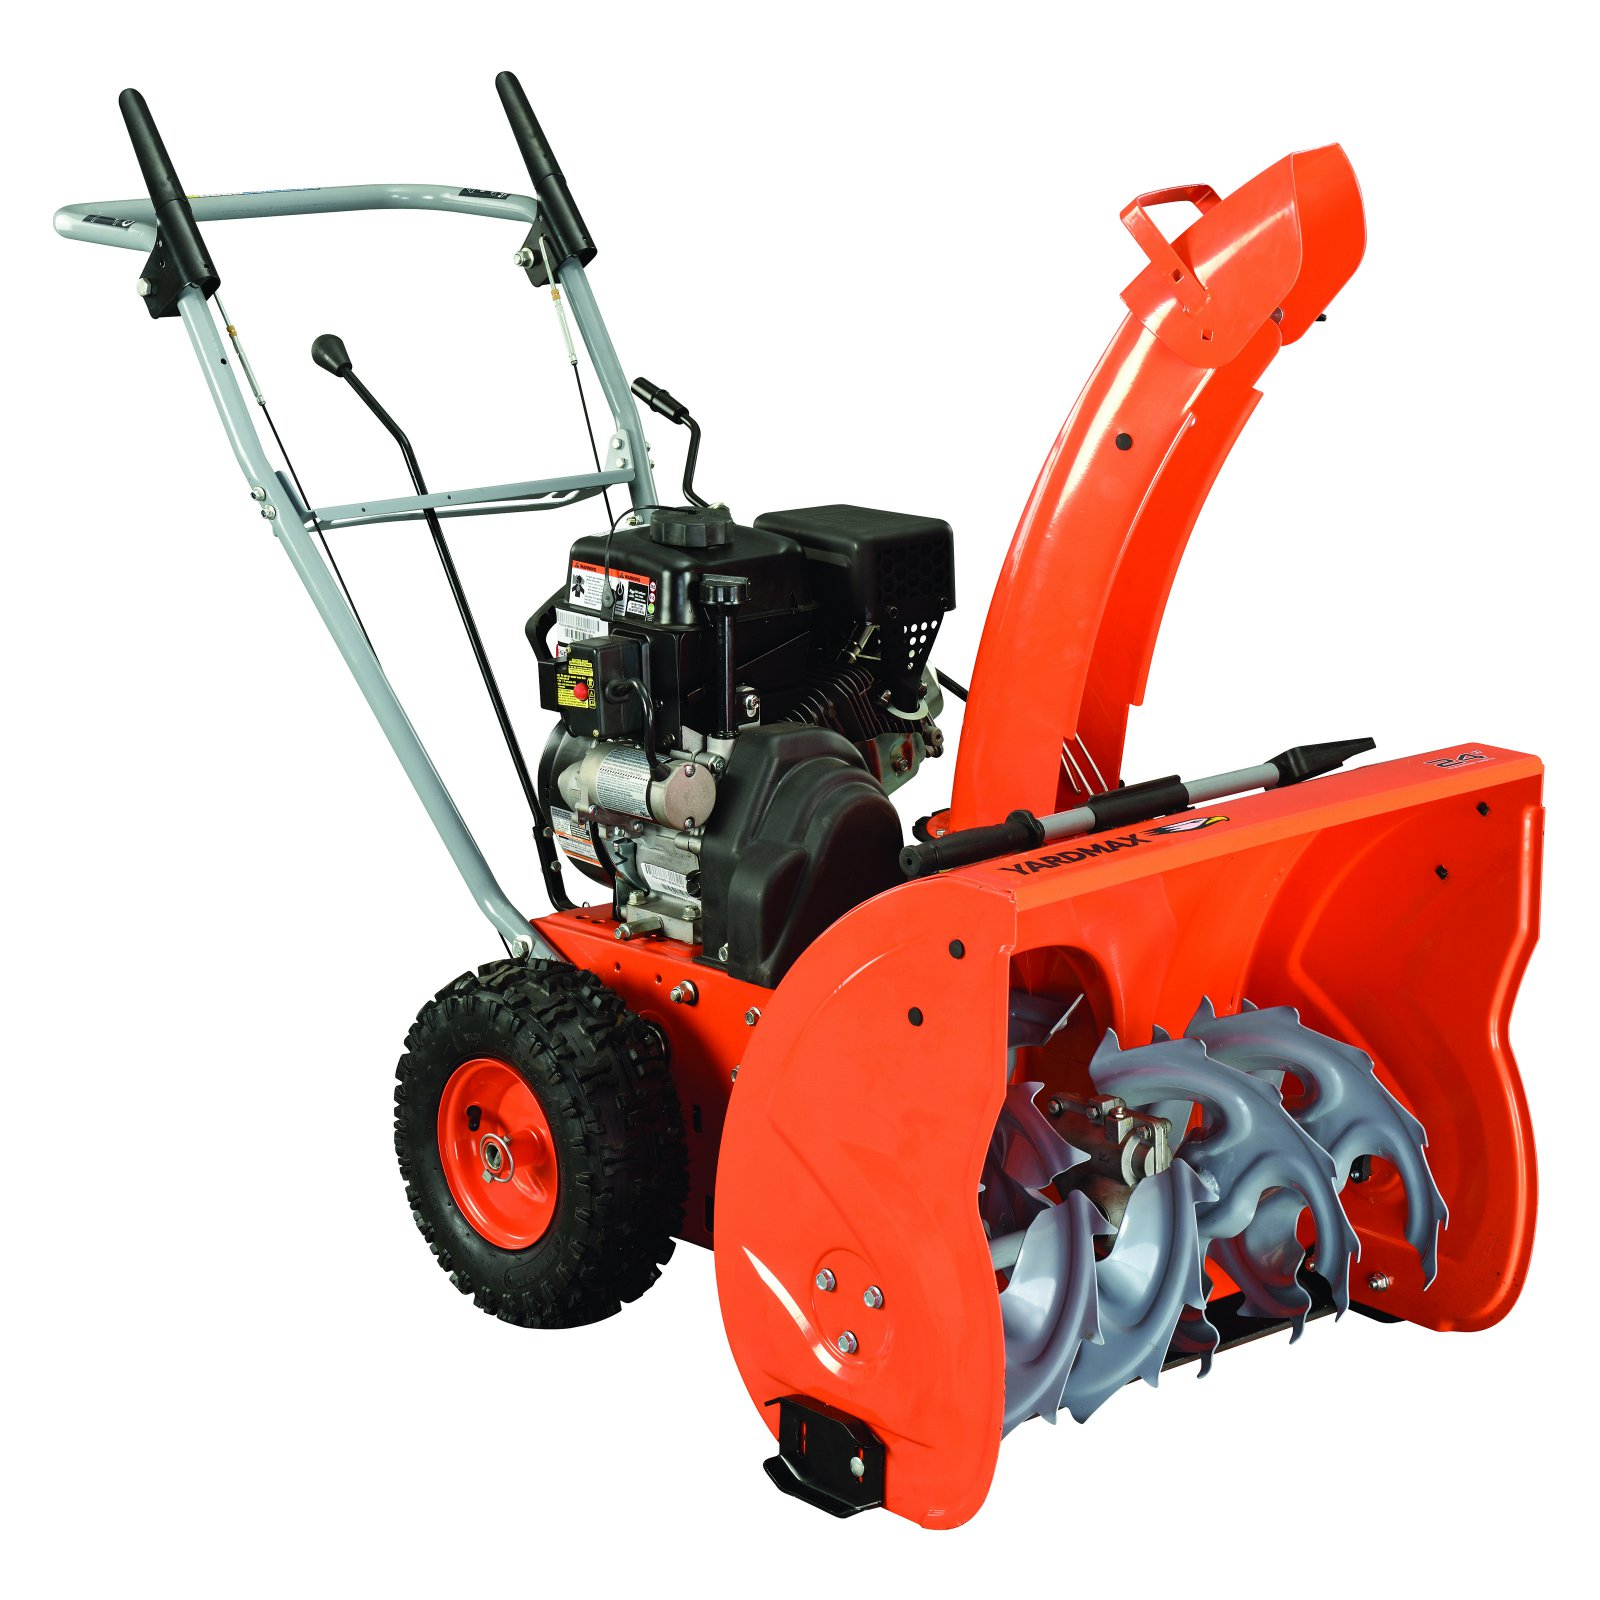 YARDMAX 2-Stage 24 in. Snow Blower